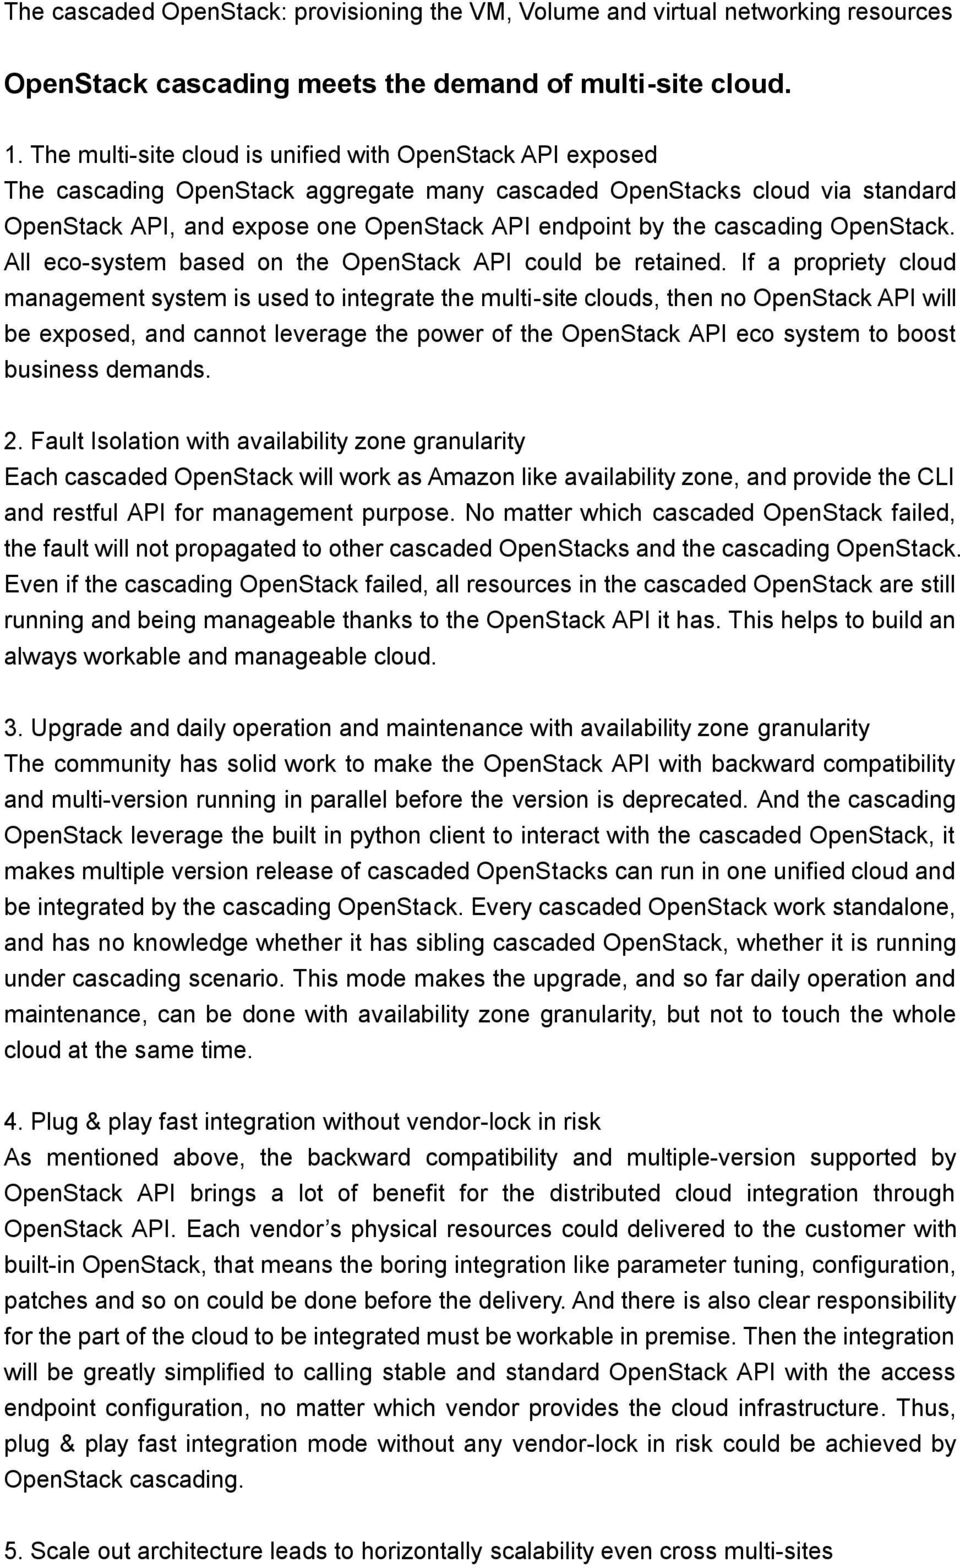 cascading OpenStack. All eco-system based on the OpenStack API could be retained.